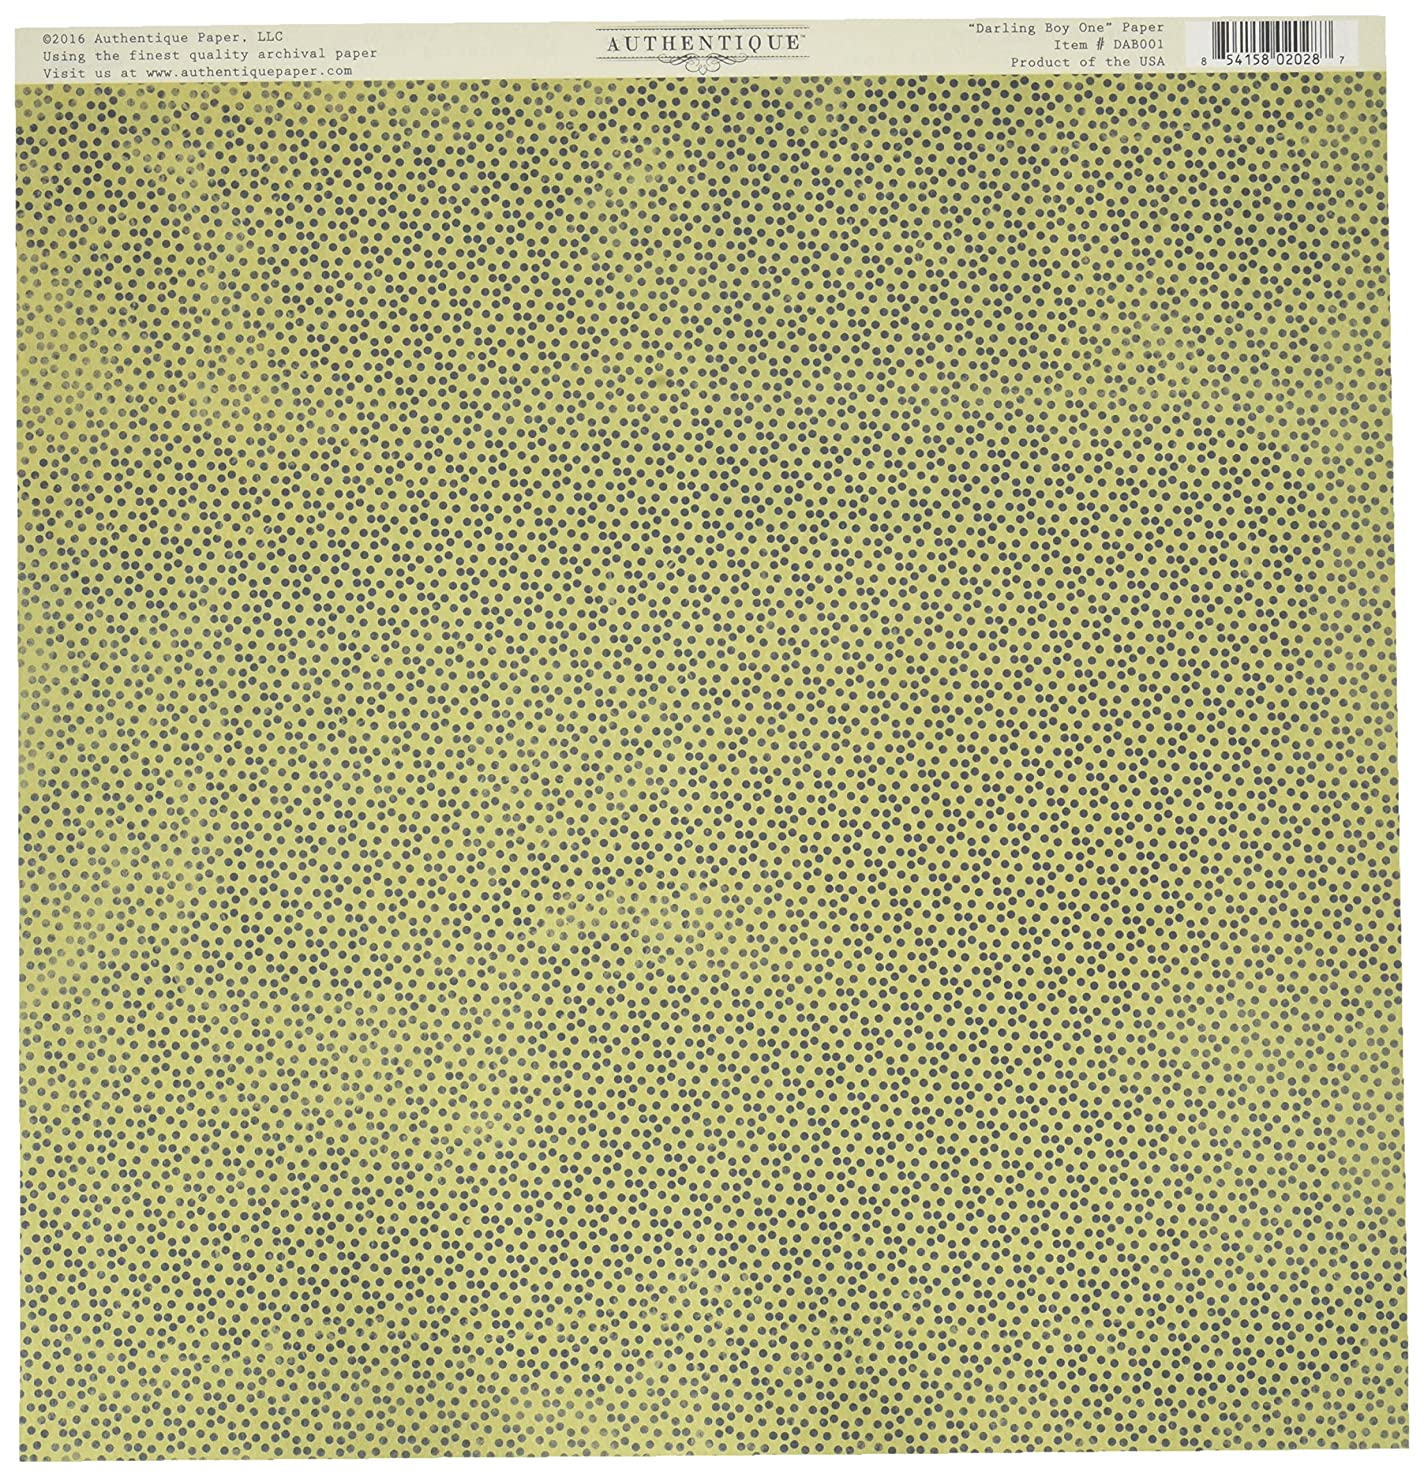 Authentique Paper DAB001 18 Sheet No.1 Mini Dot Cut-Apart Darling Boy Double-Sided Cardstock, 12